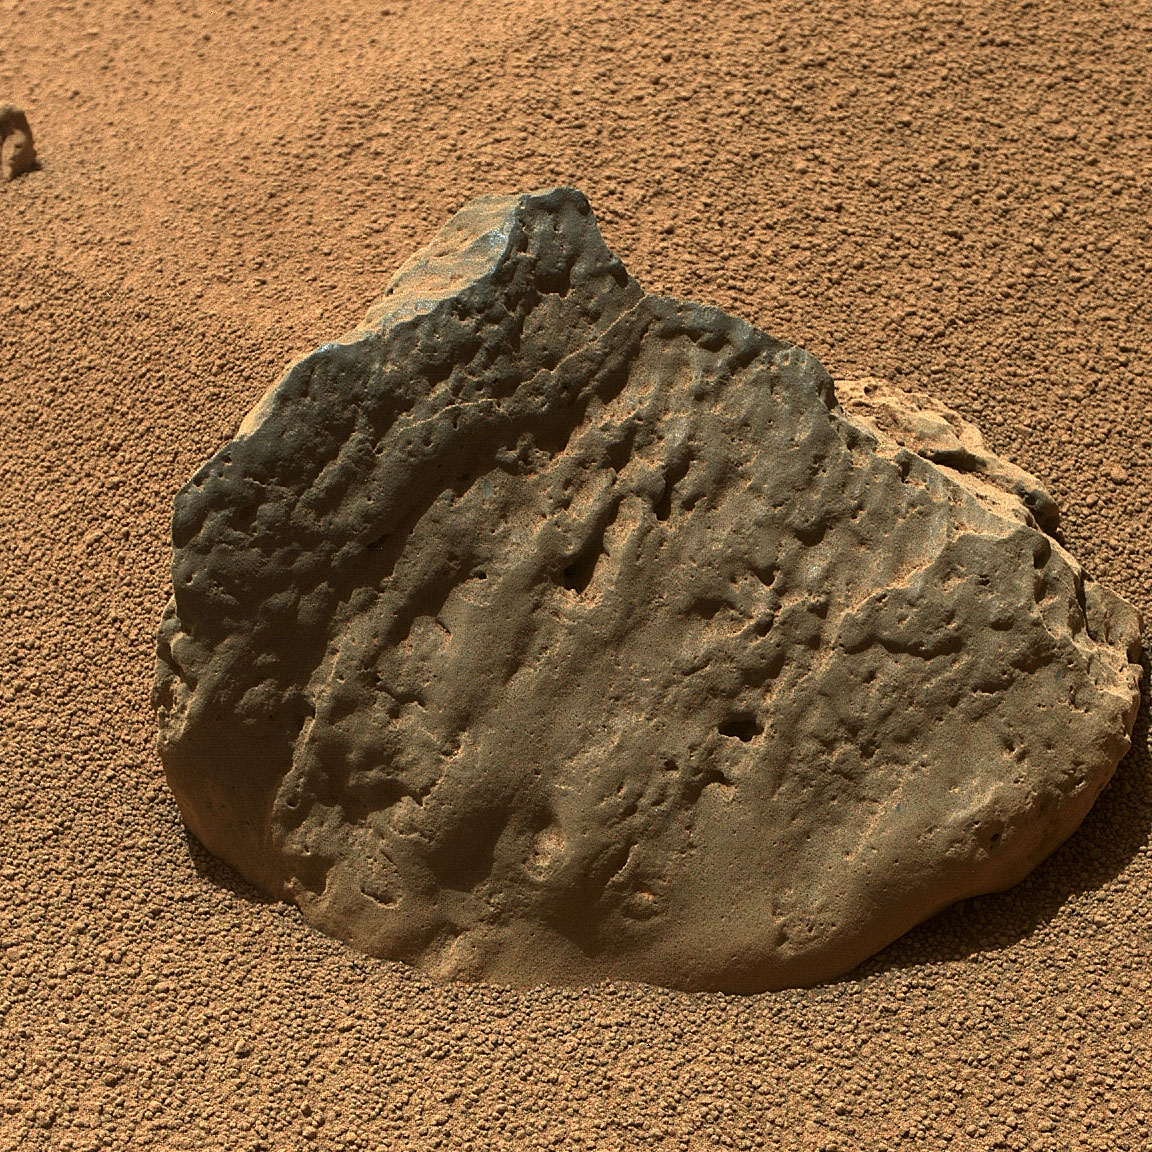 rock on mars by rover - photo #22